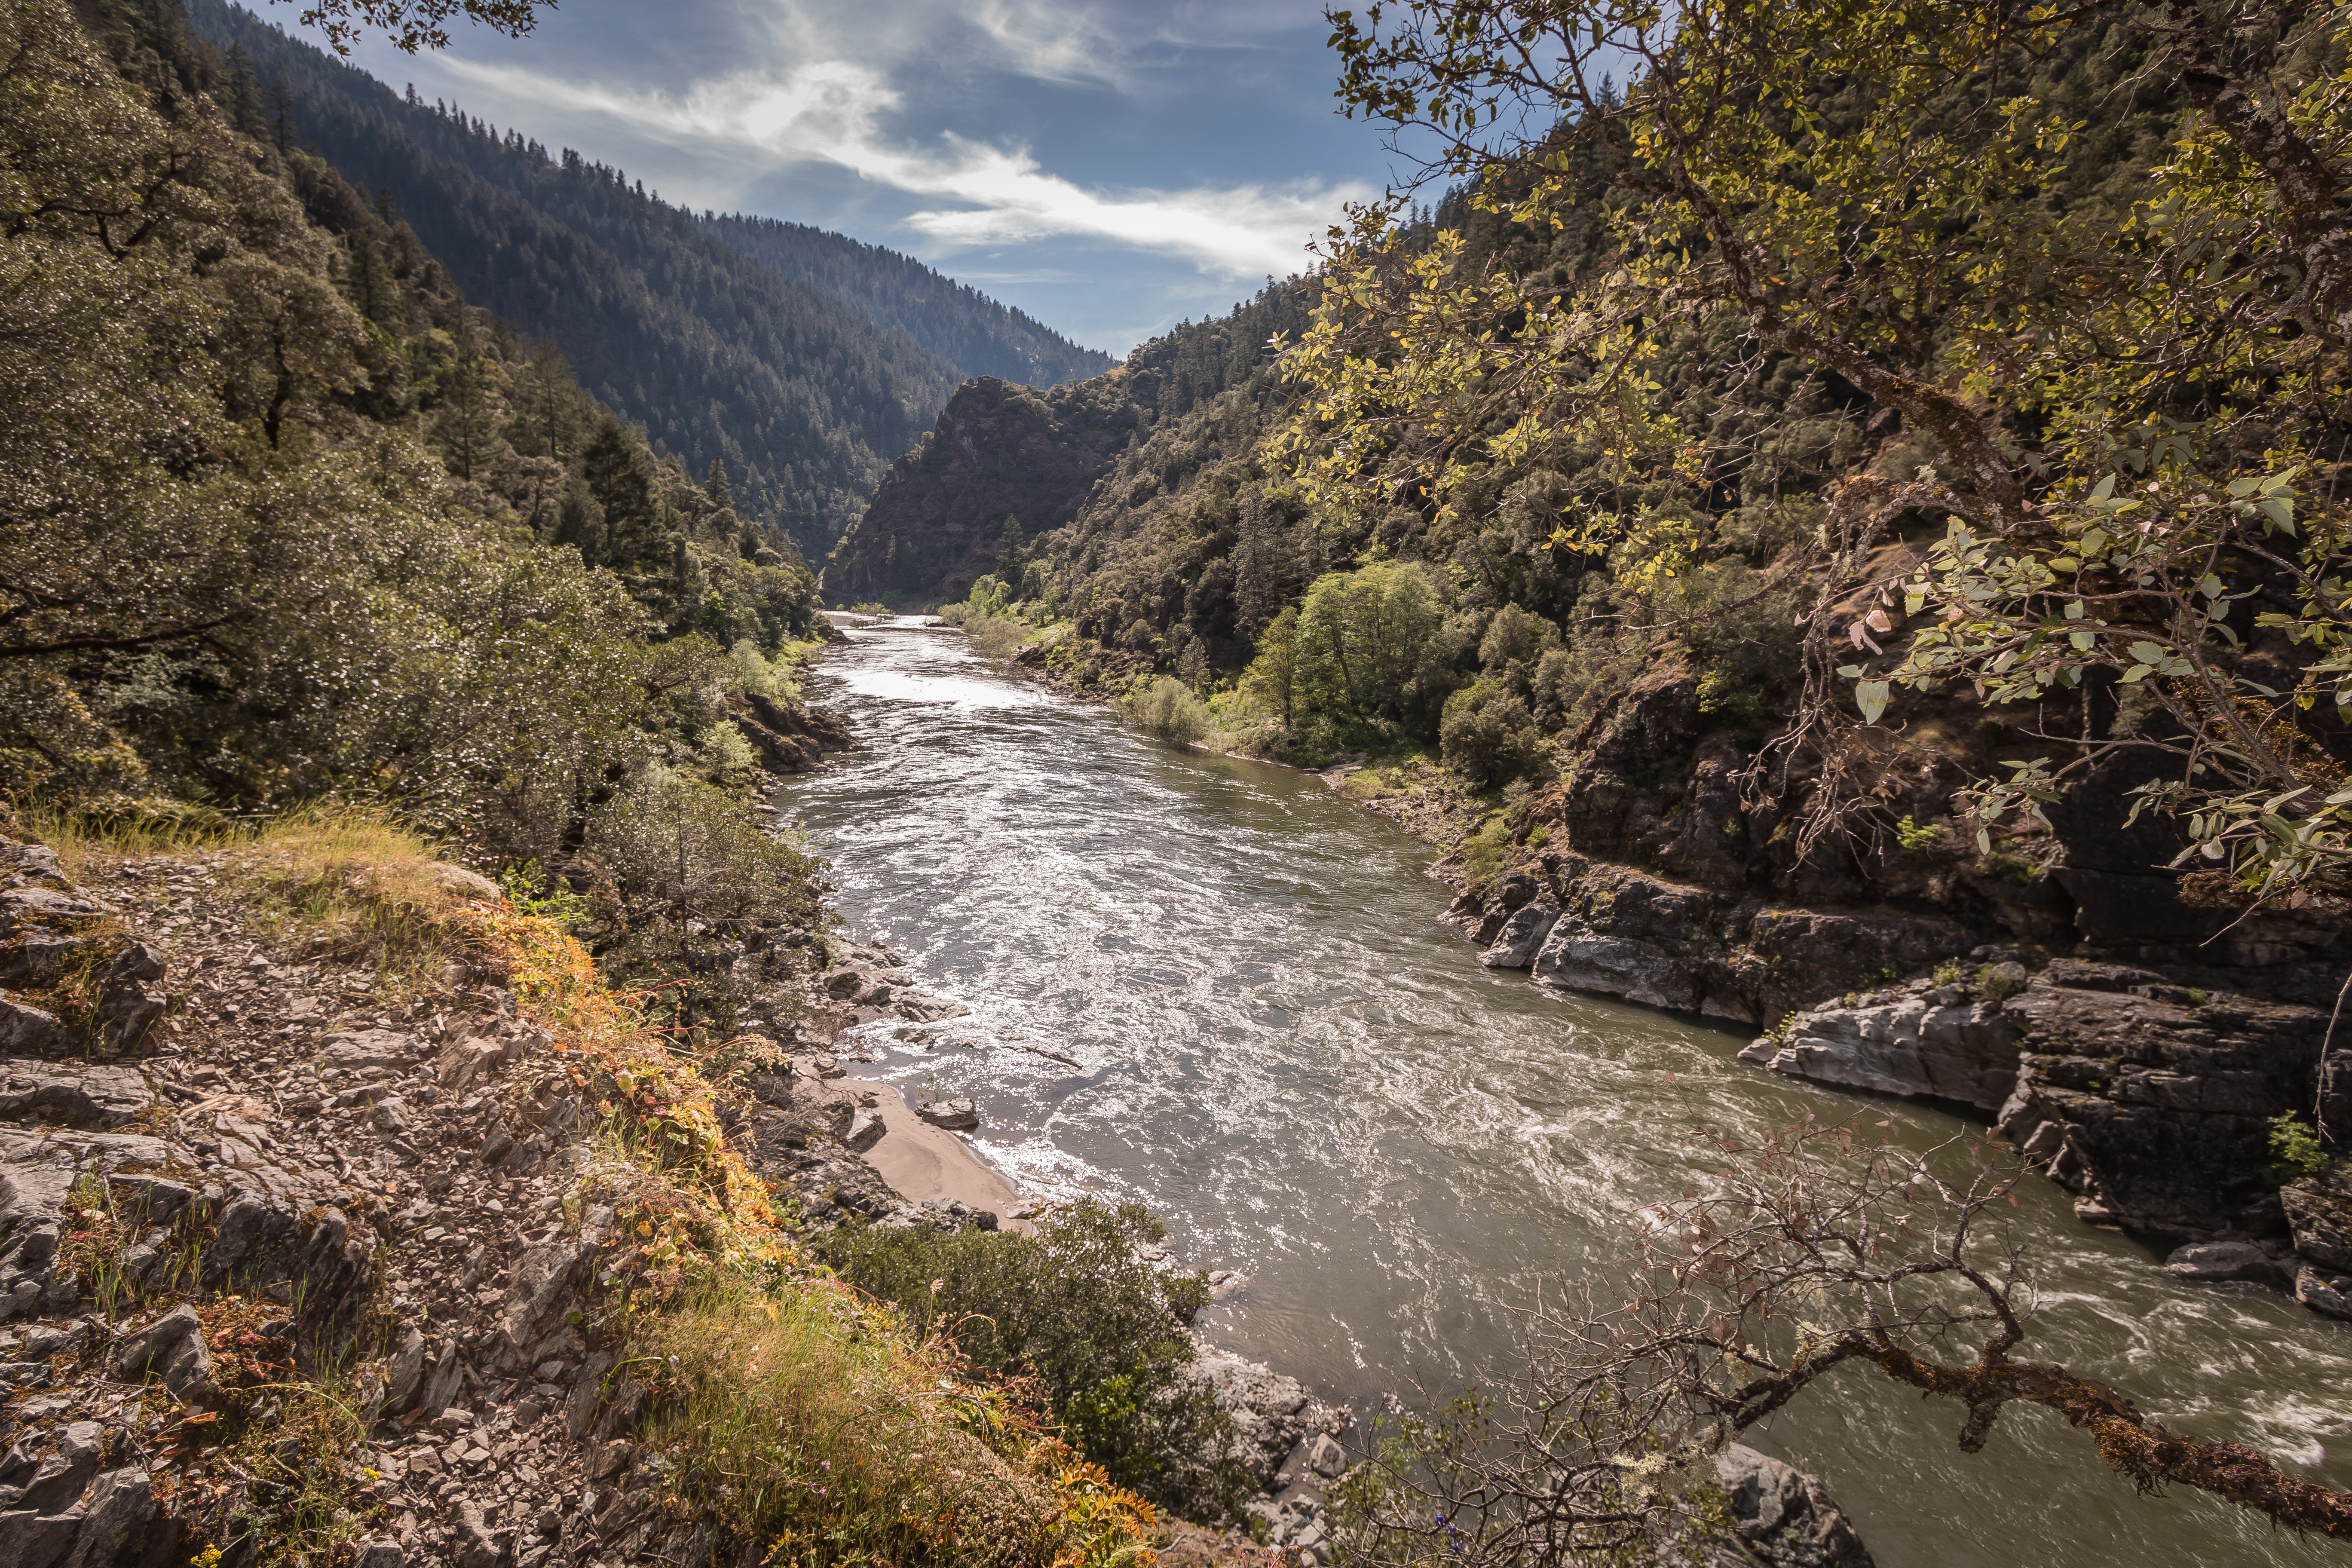 Trailside view of Rogue River, May 4, 2017.